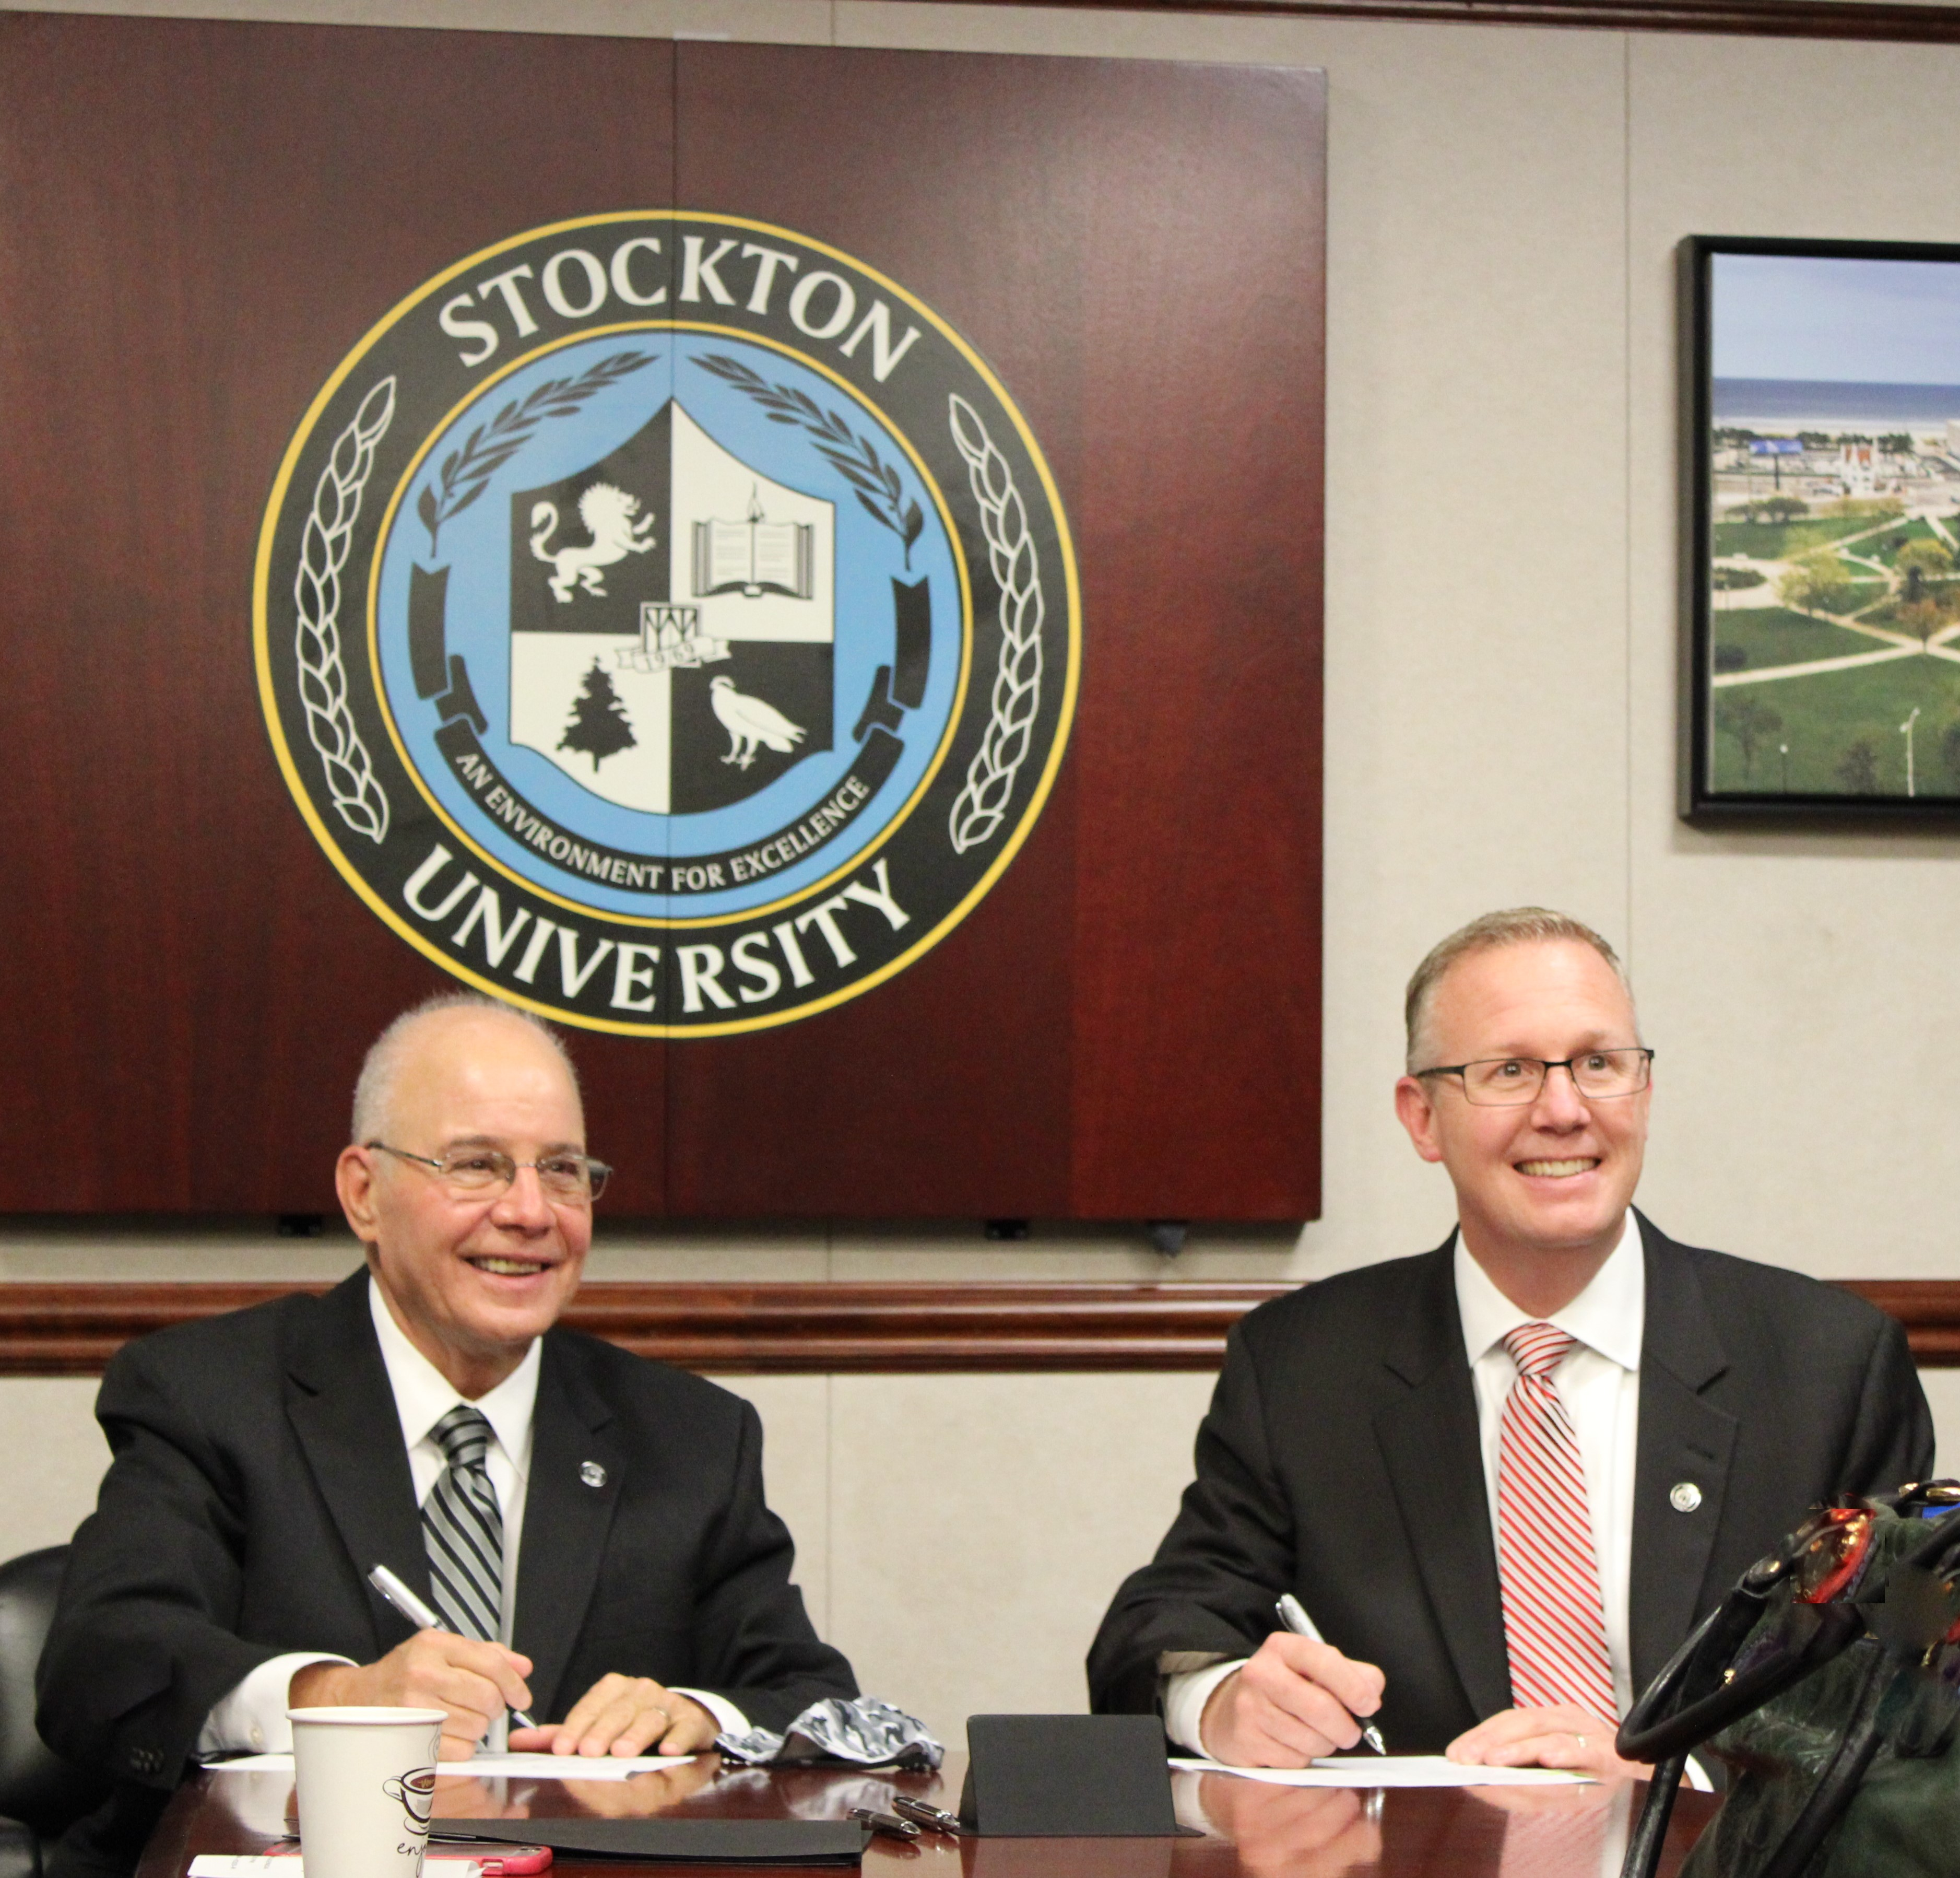 Dr. McBride signing the agreement with Stockton University for ECHS with university president, Dr. Kesselman